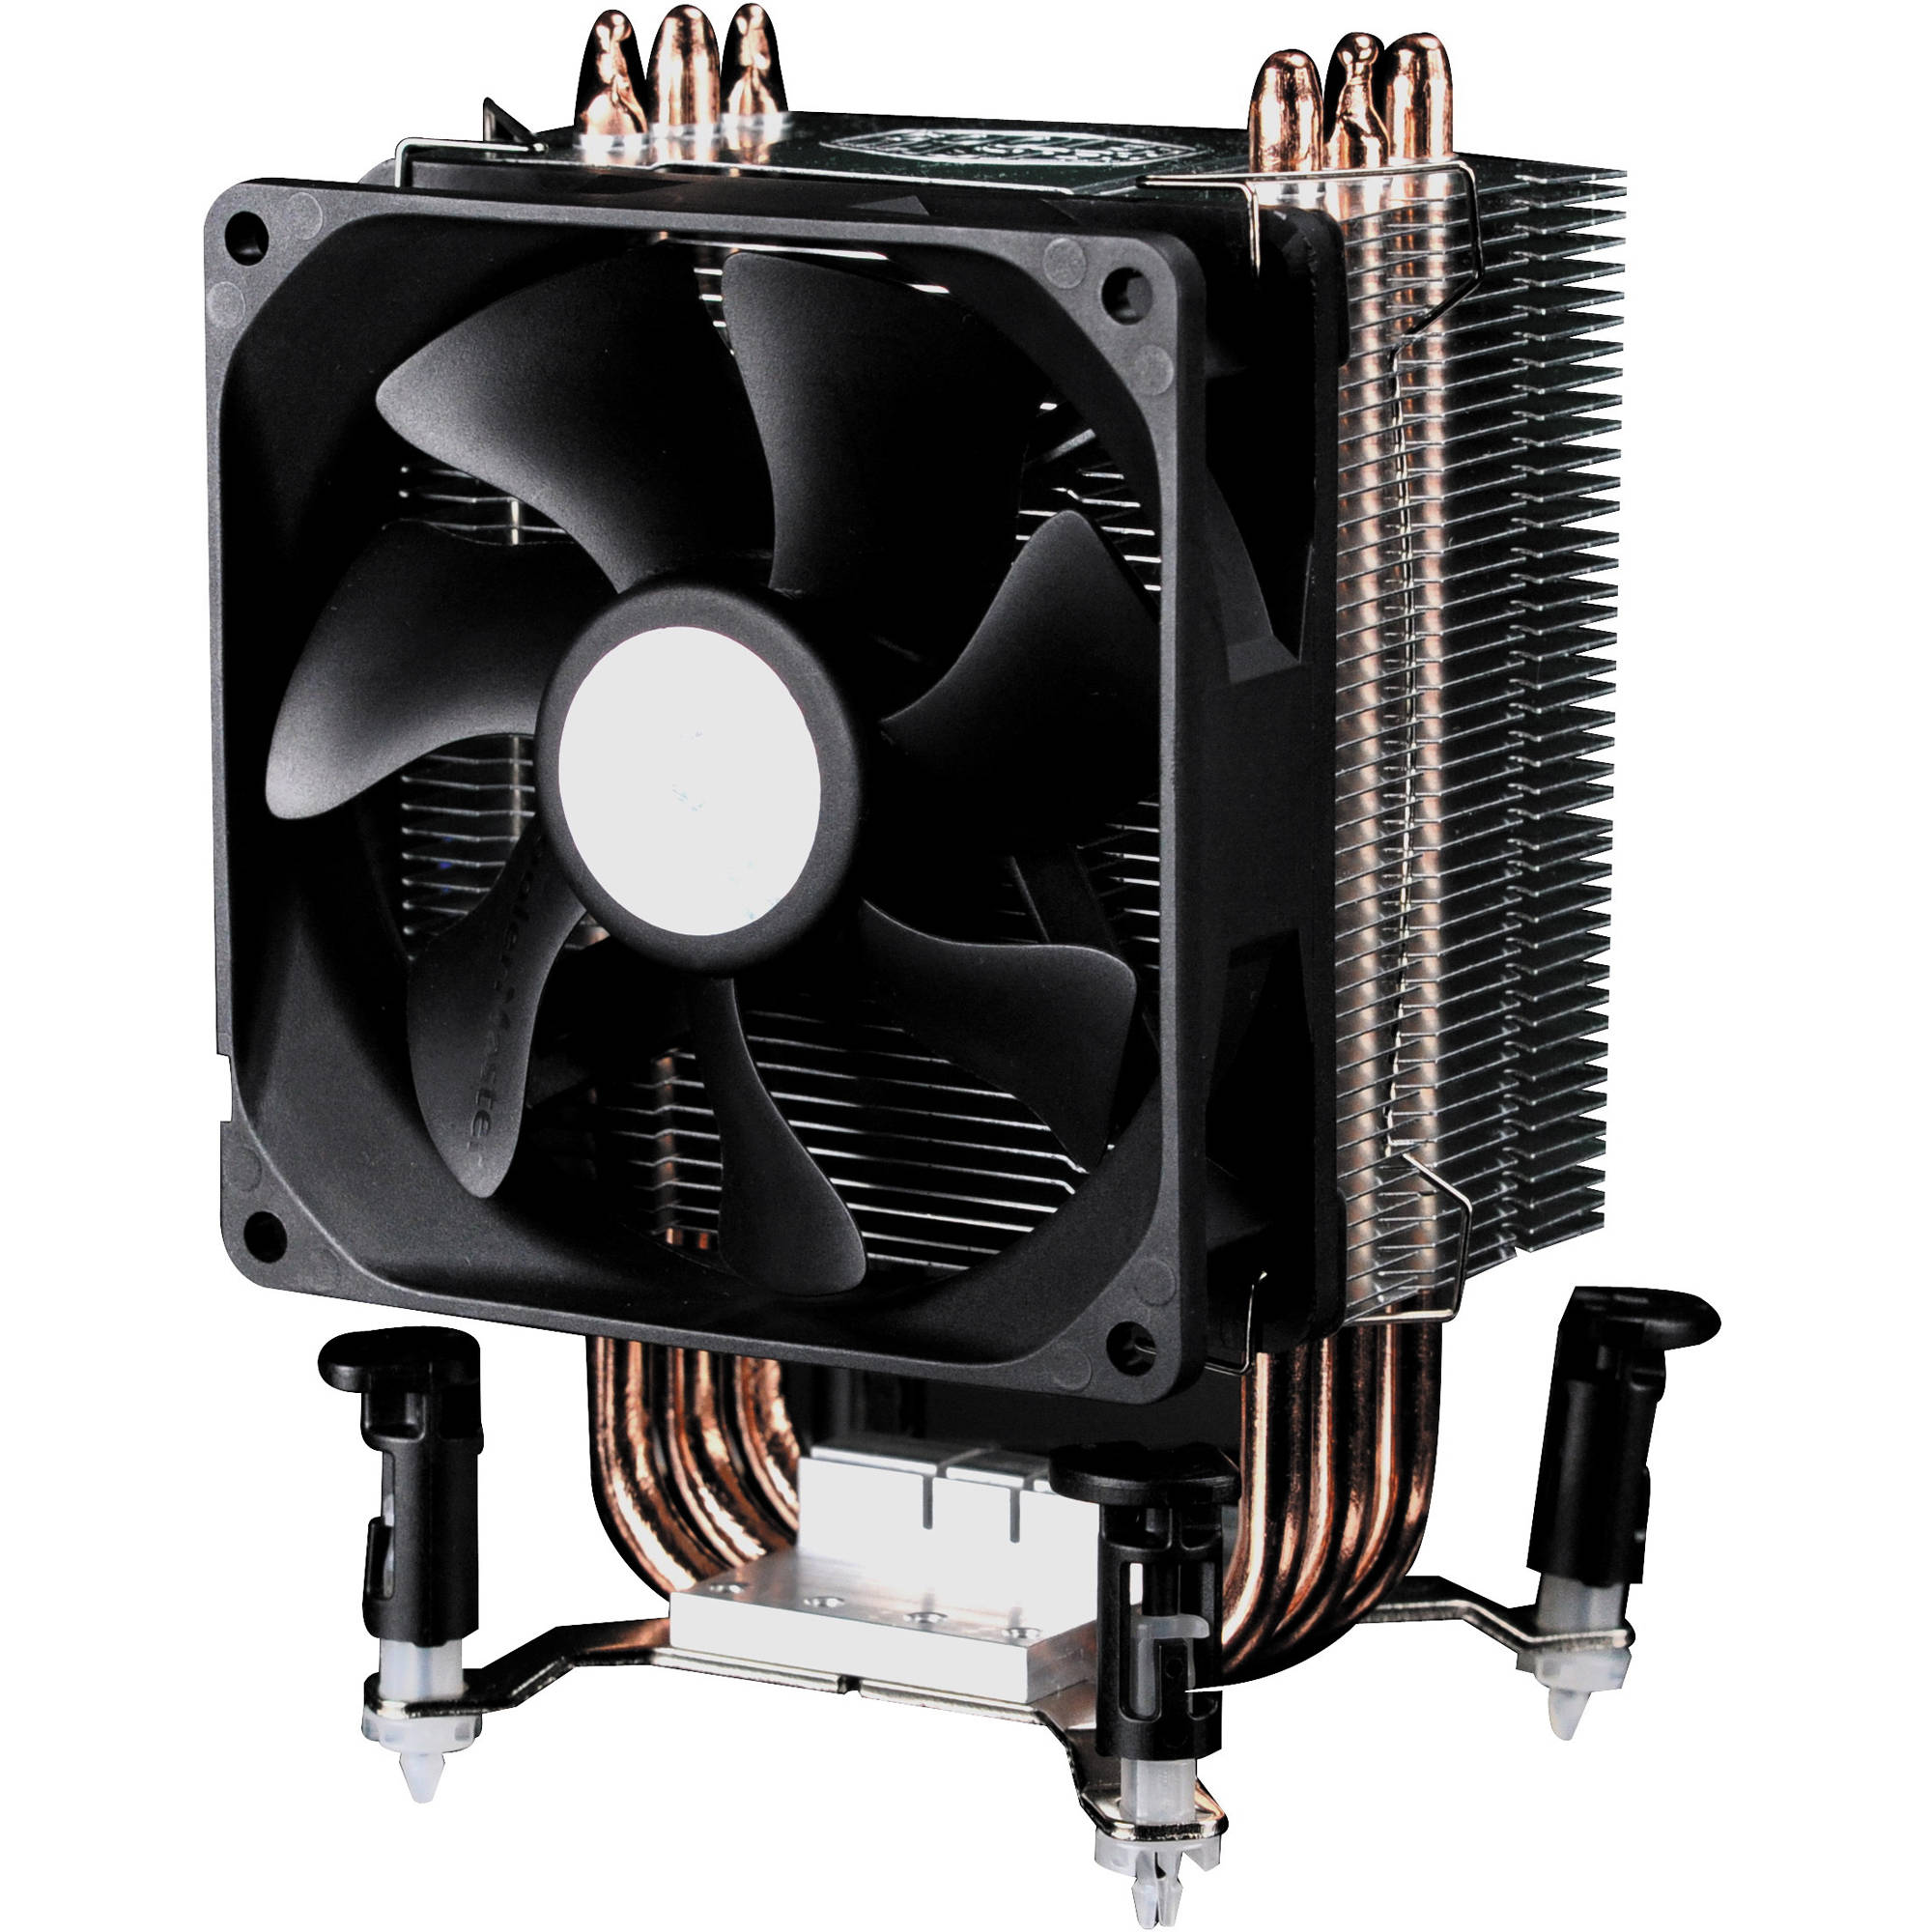 Cooler Master Hyper TX3 CPU Cooler RR-910-HTX3-G1 B&H Photo